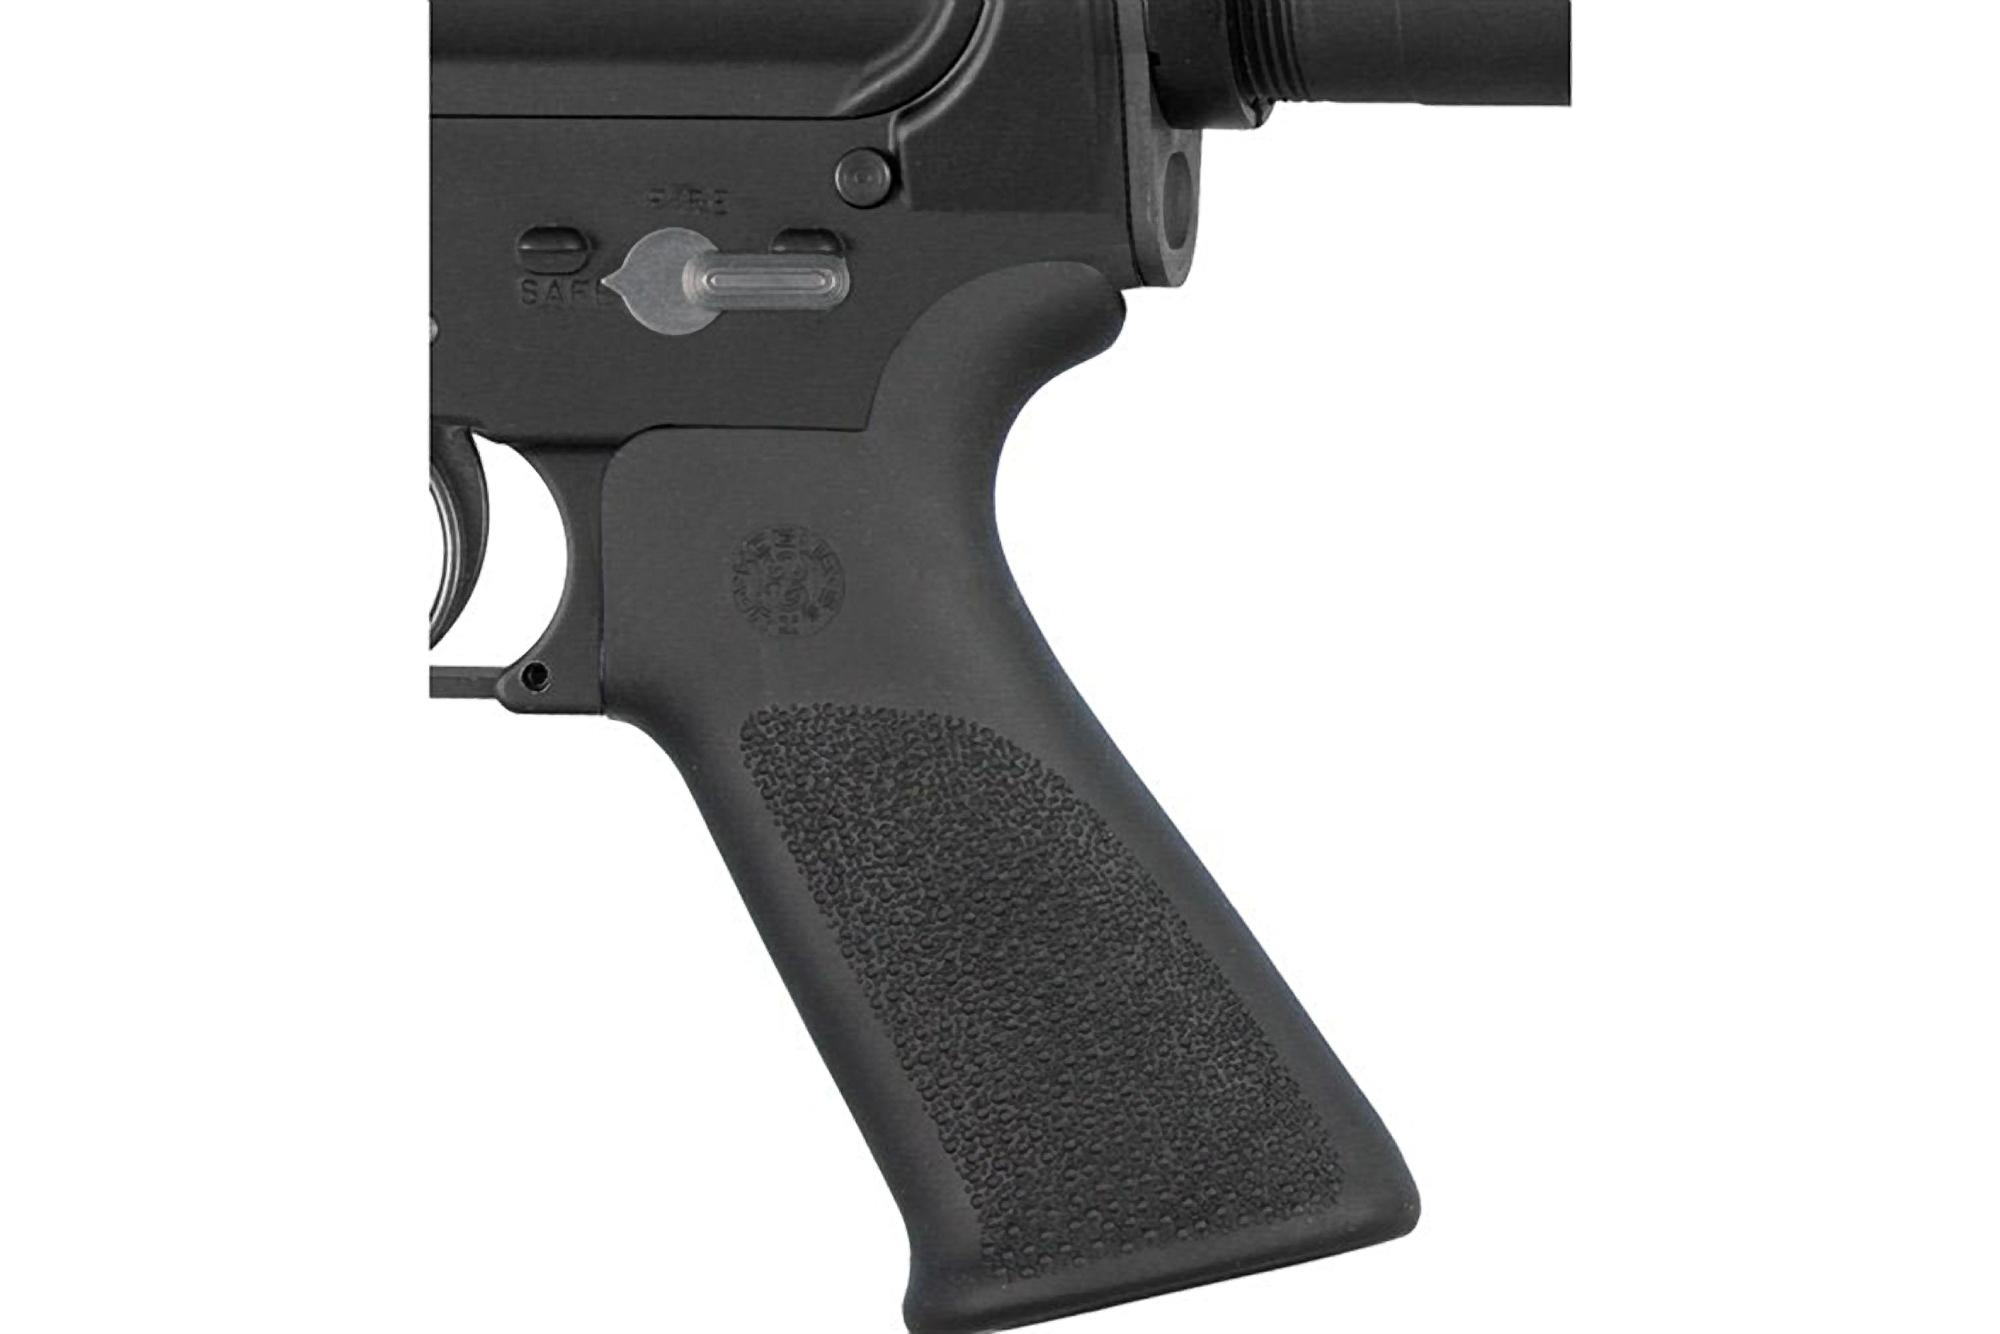 Hogue AR-15 OverMolded Pistol Grip - Beaver Tail - No Finger Grooves - Black